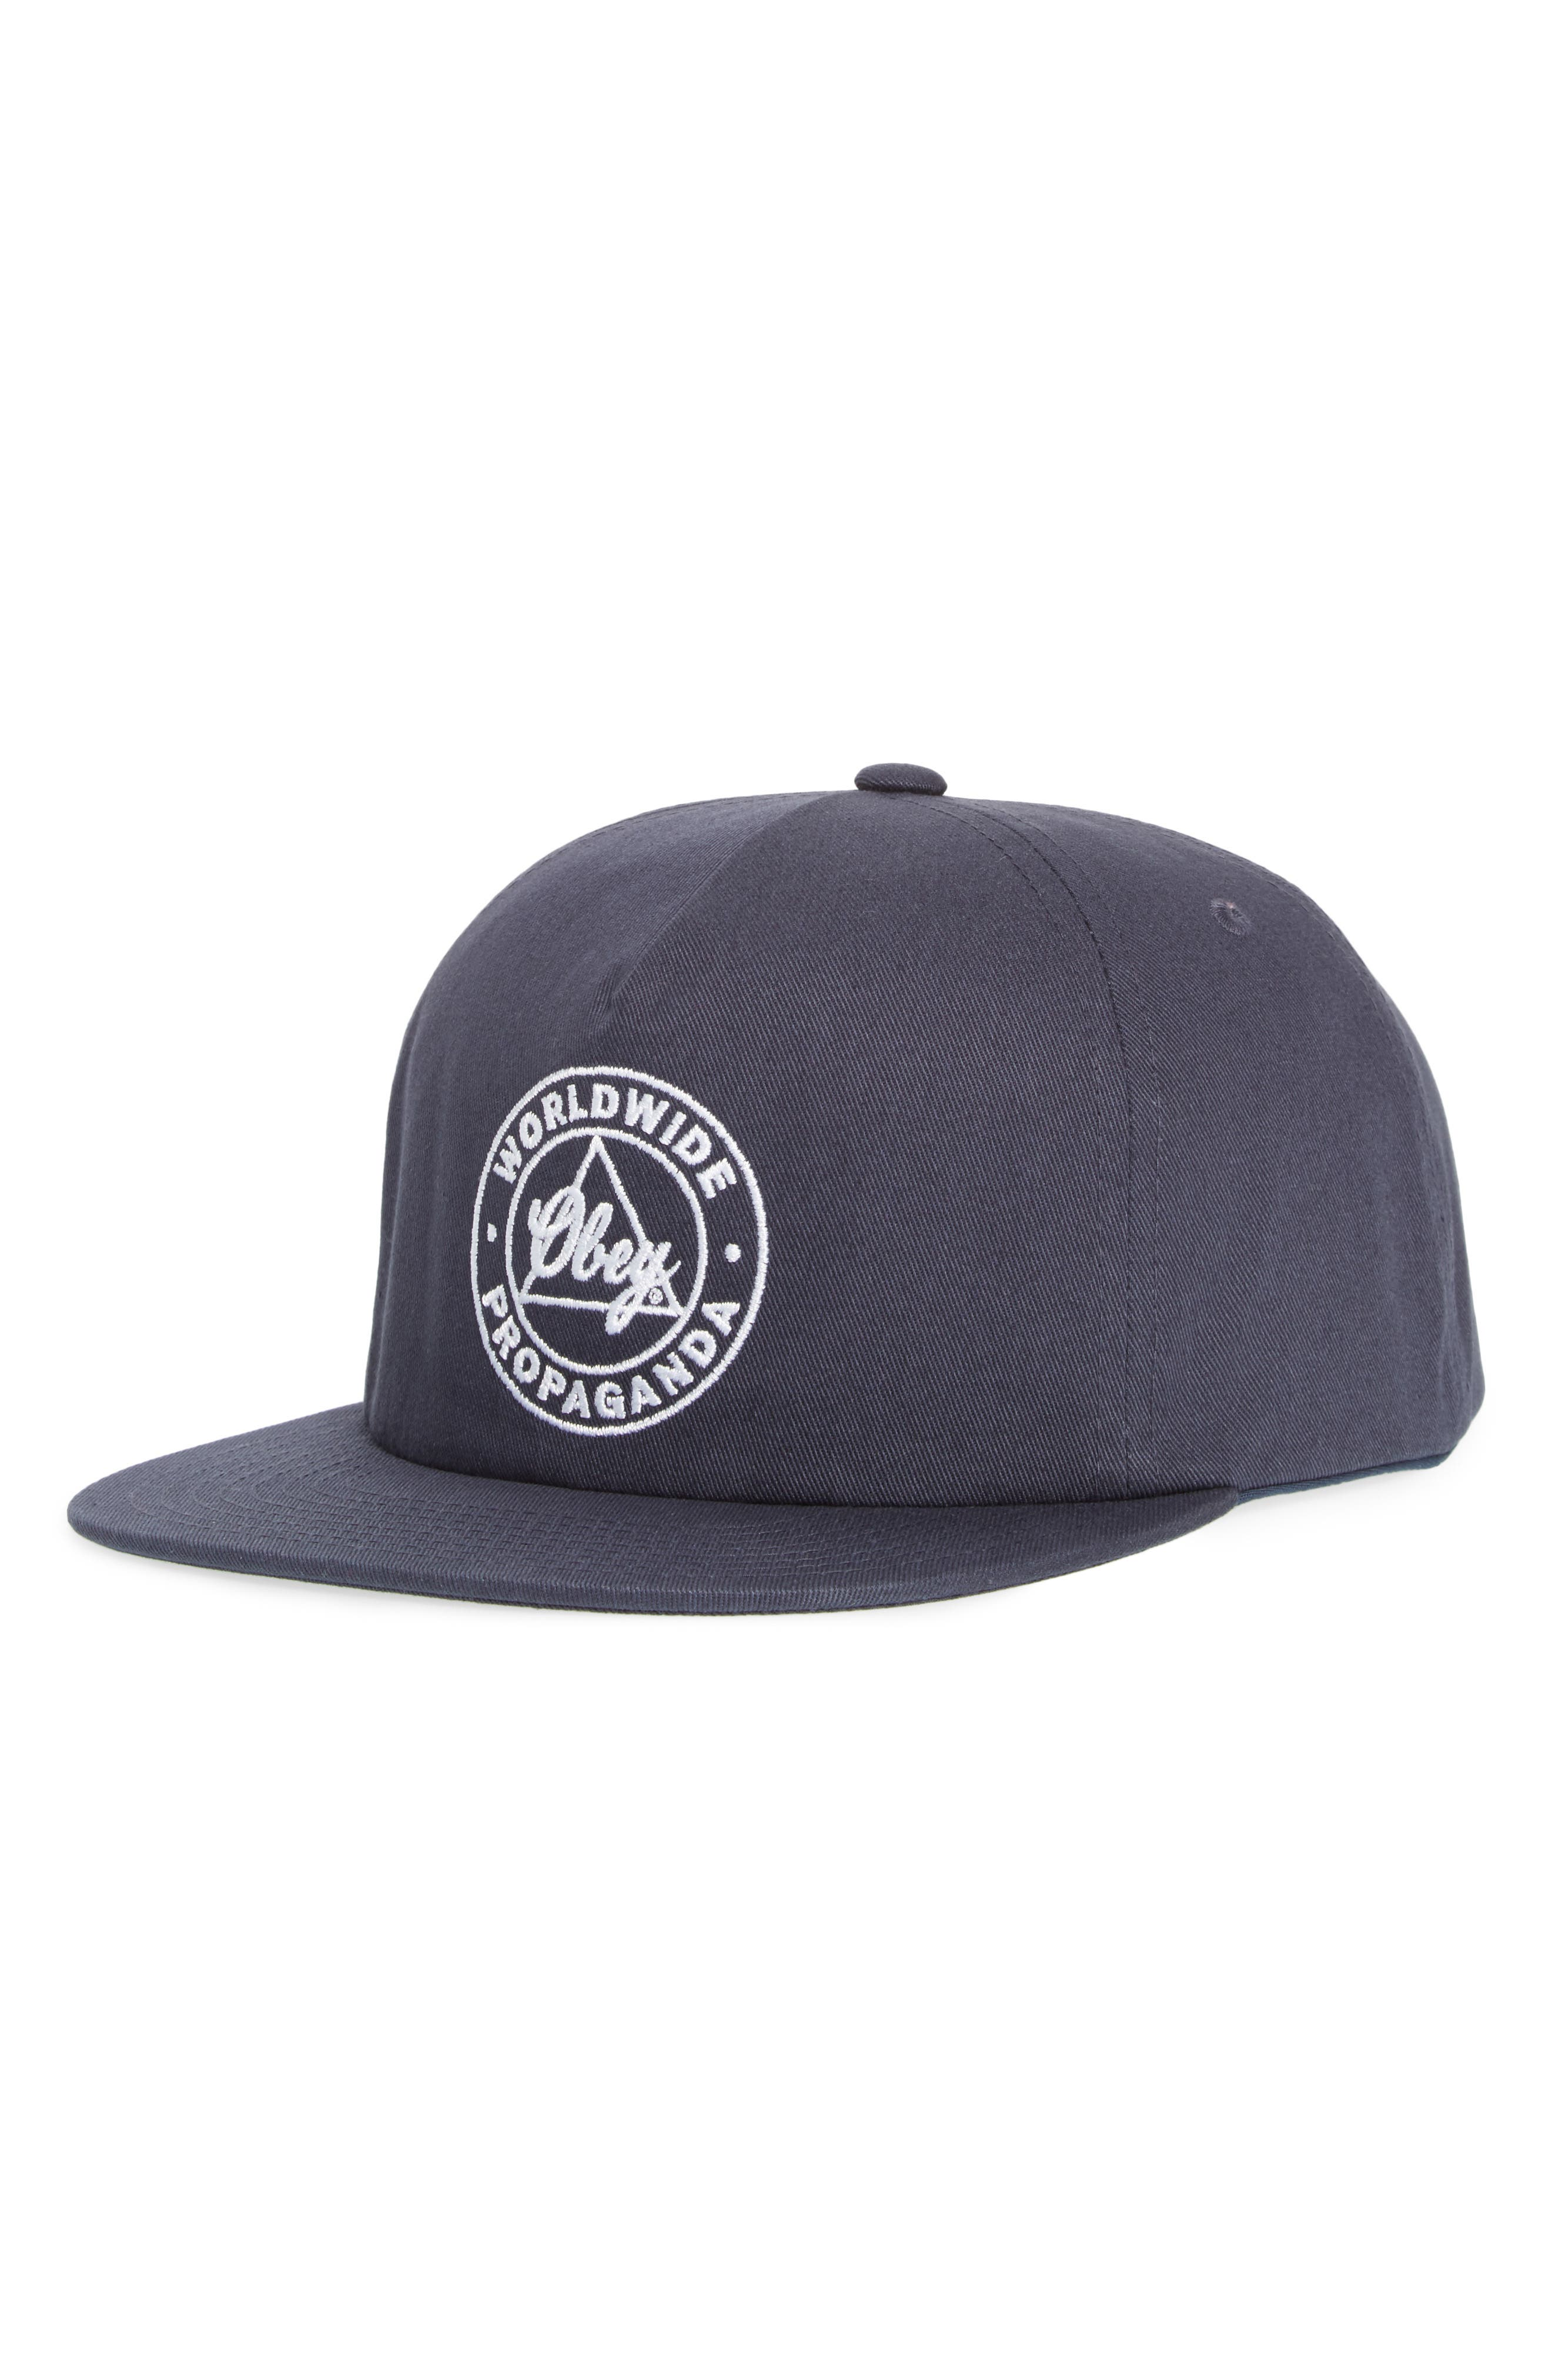 Worldwide Propaganda II Snapback Cap,                             Main thumbnail 1, color,                             Navy